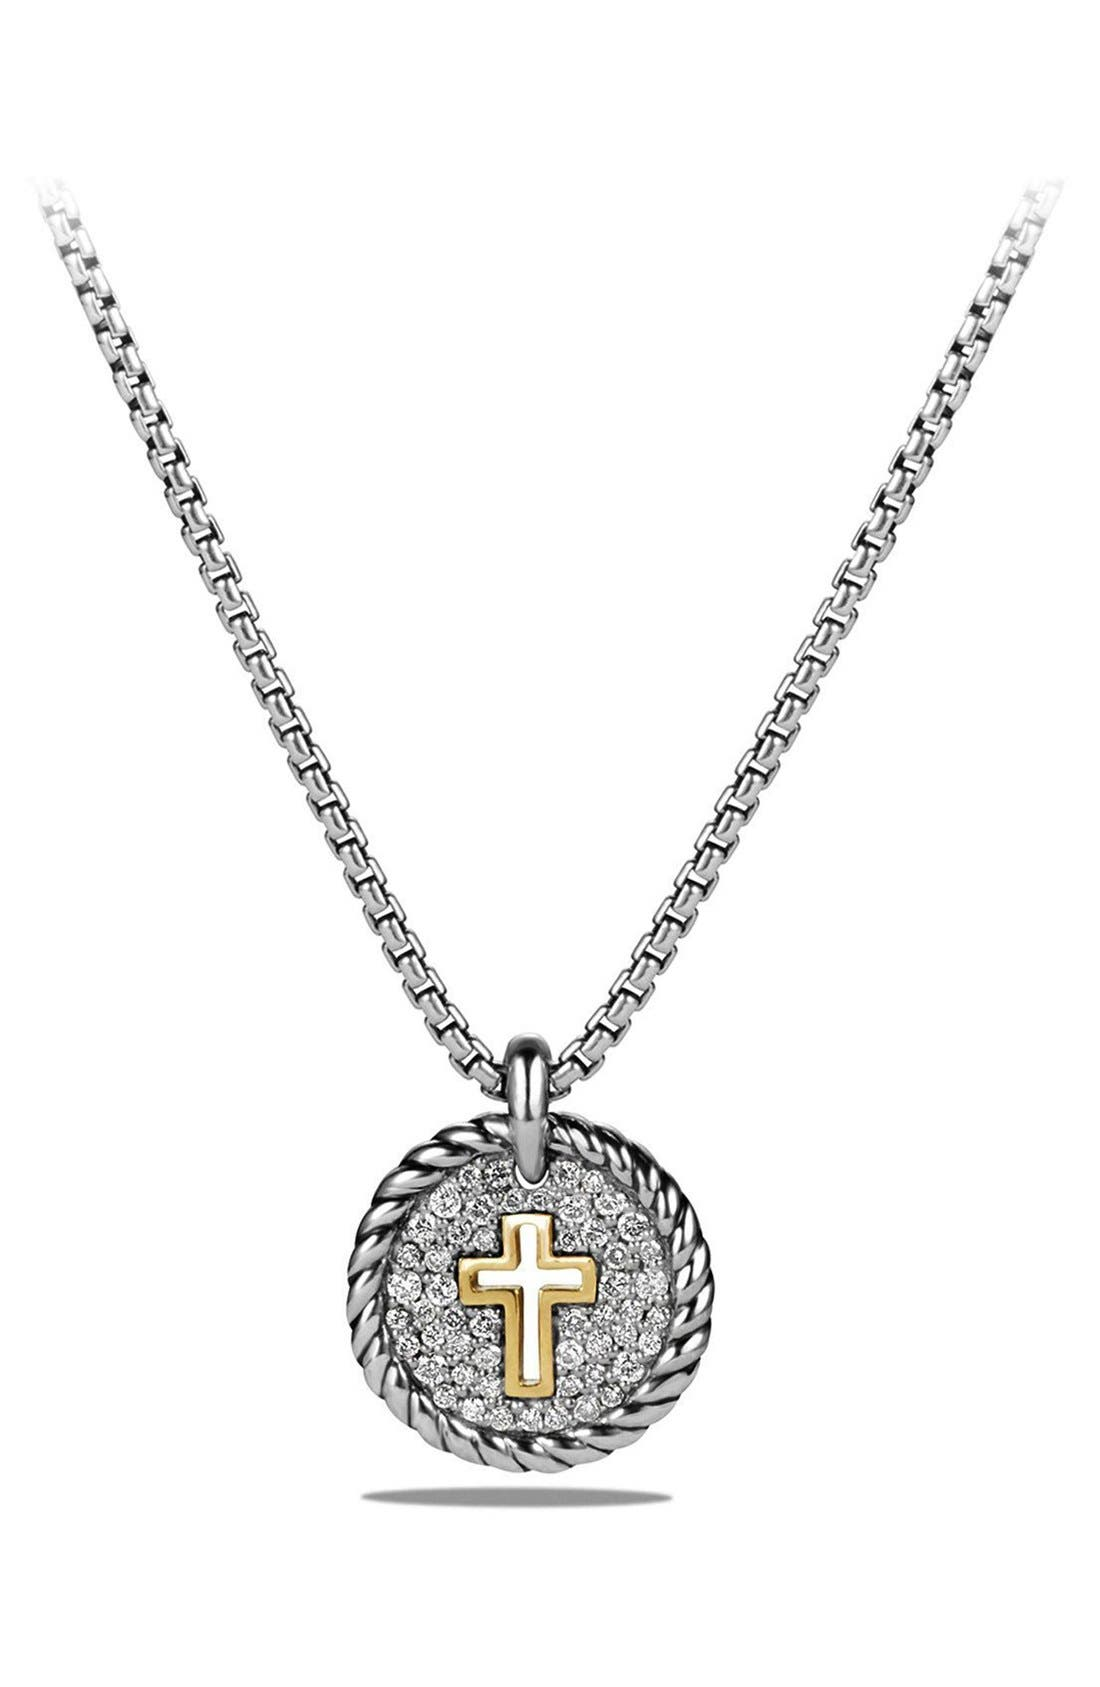 'Cable Collectibles' Cross Charm Necklace with Diamonds & 18K Gold,                             Main thumbnail 1, color,                             SILVER